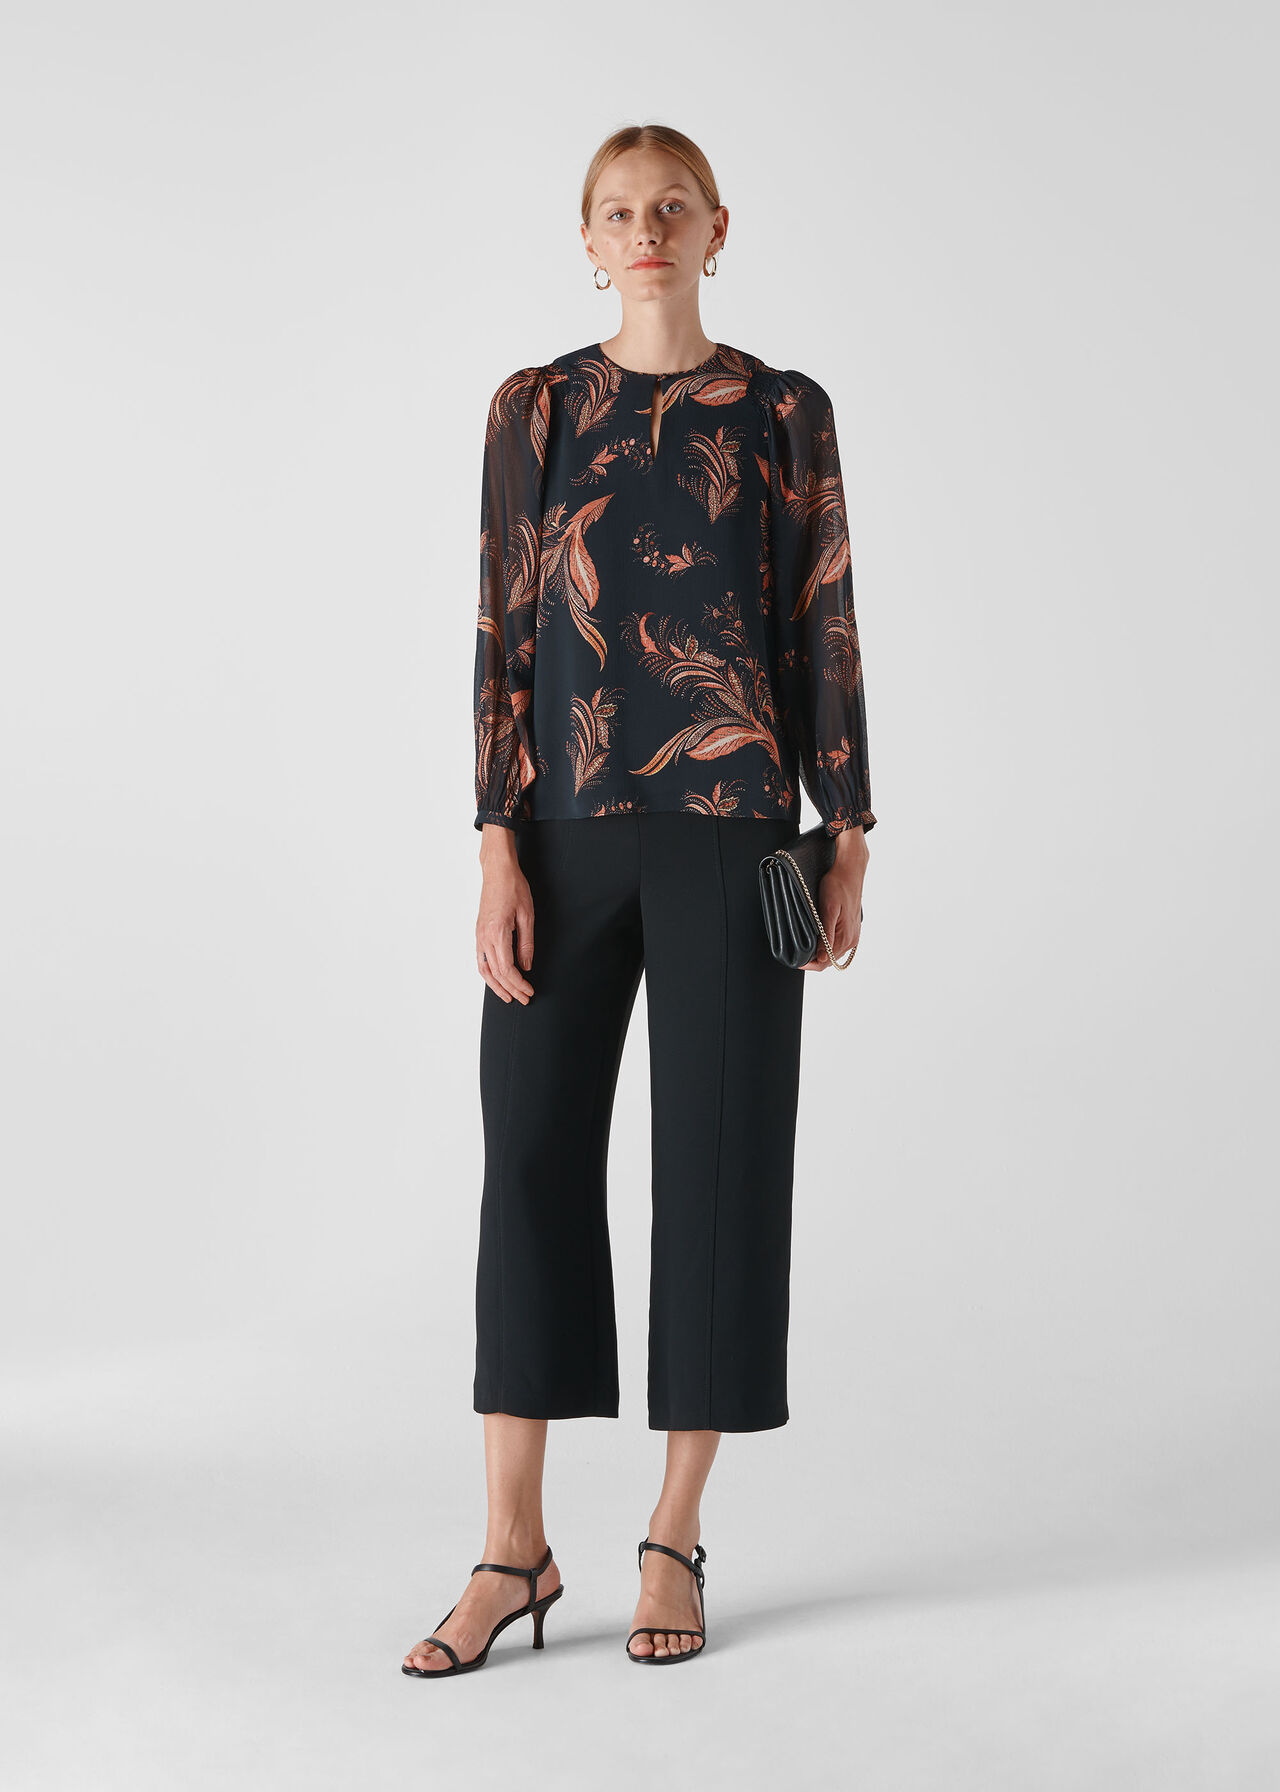 Paisley Leaf Print Blouse Black/Multi